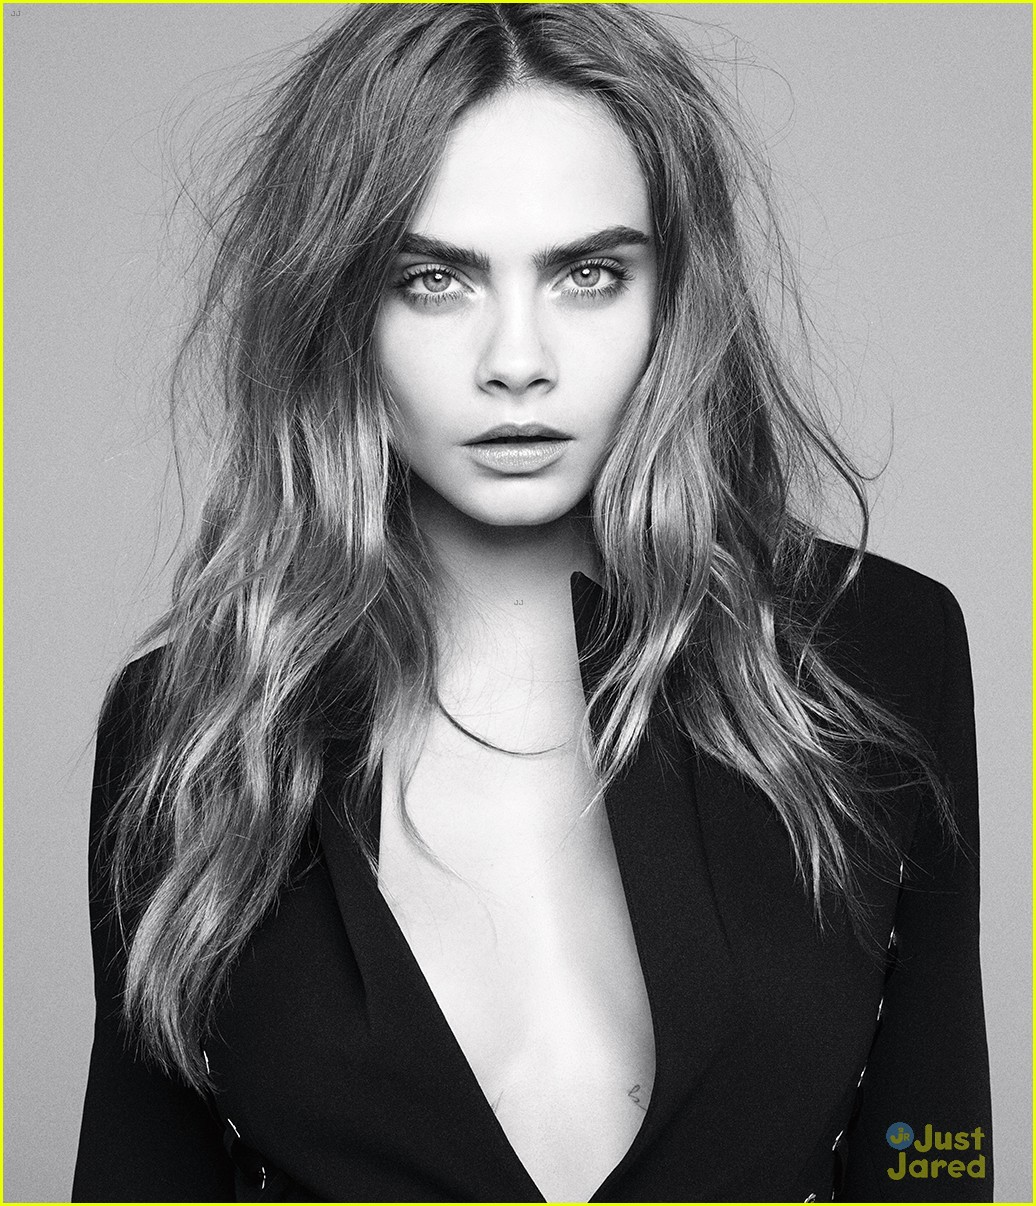 Cara Delevingne Says Modeling Made Her Feel 'Empty ...